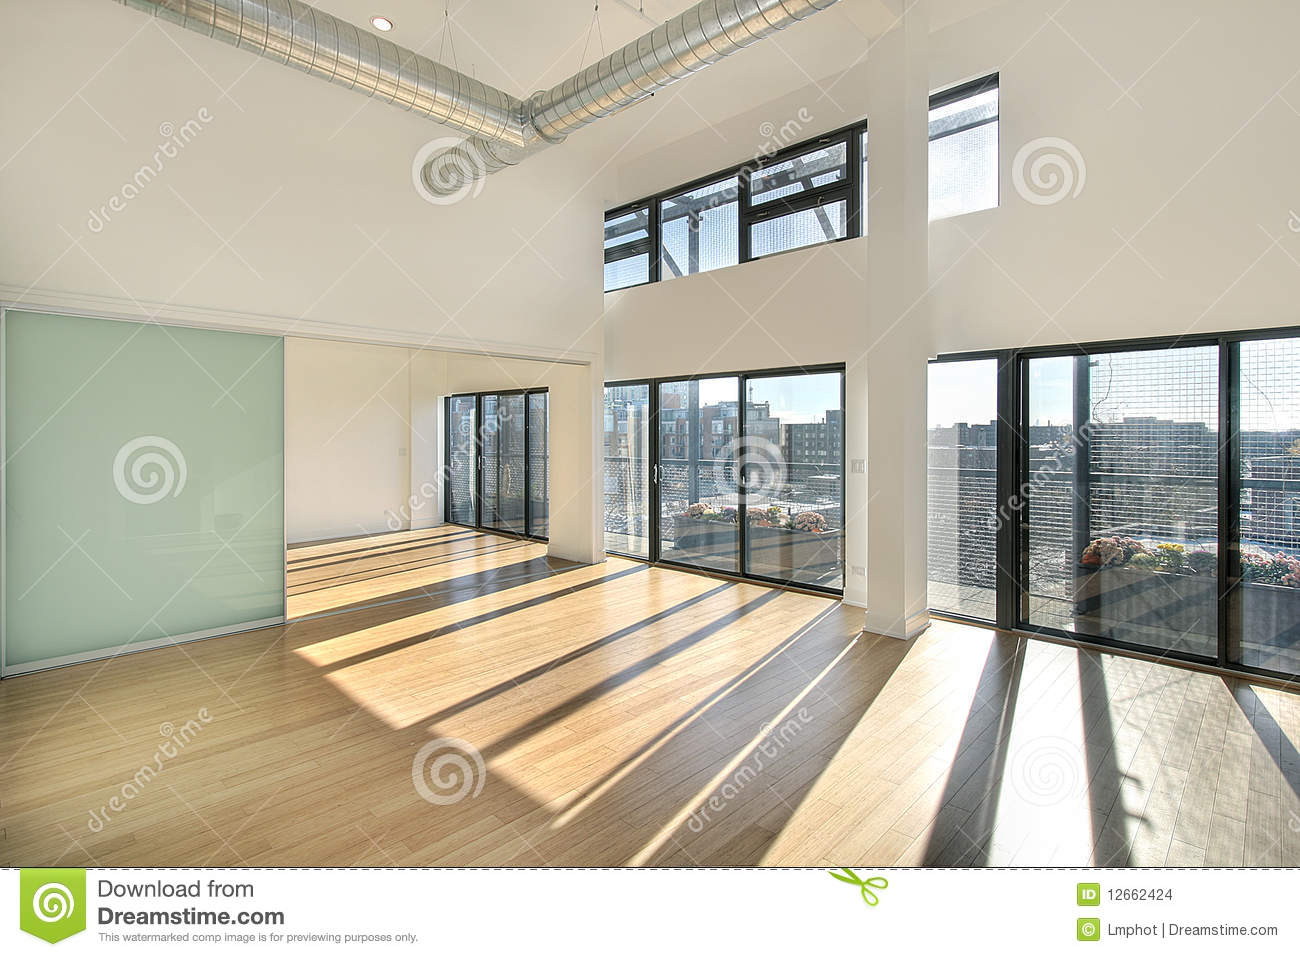 Living room with balcony view stock images image 12662424 for Balcony with view